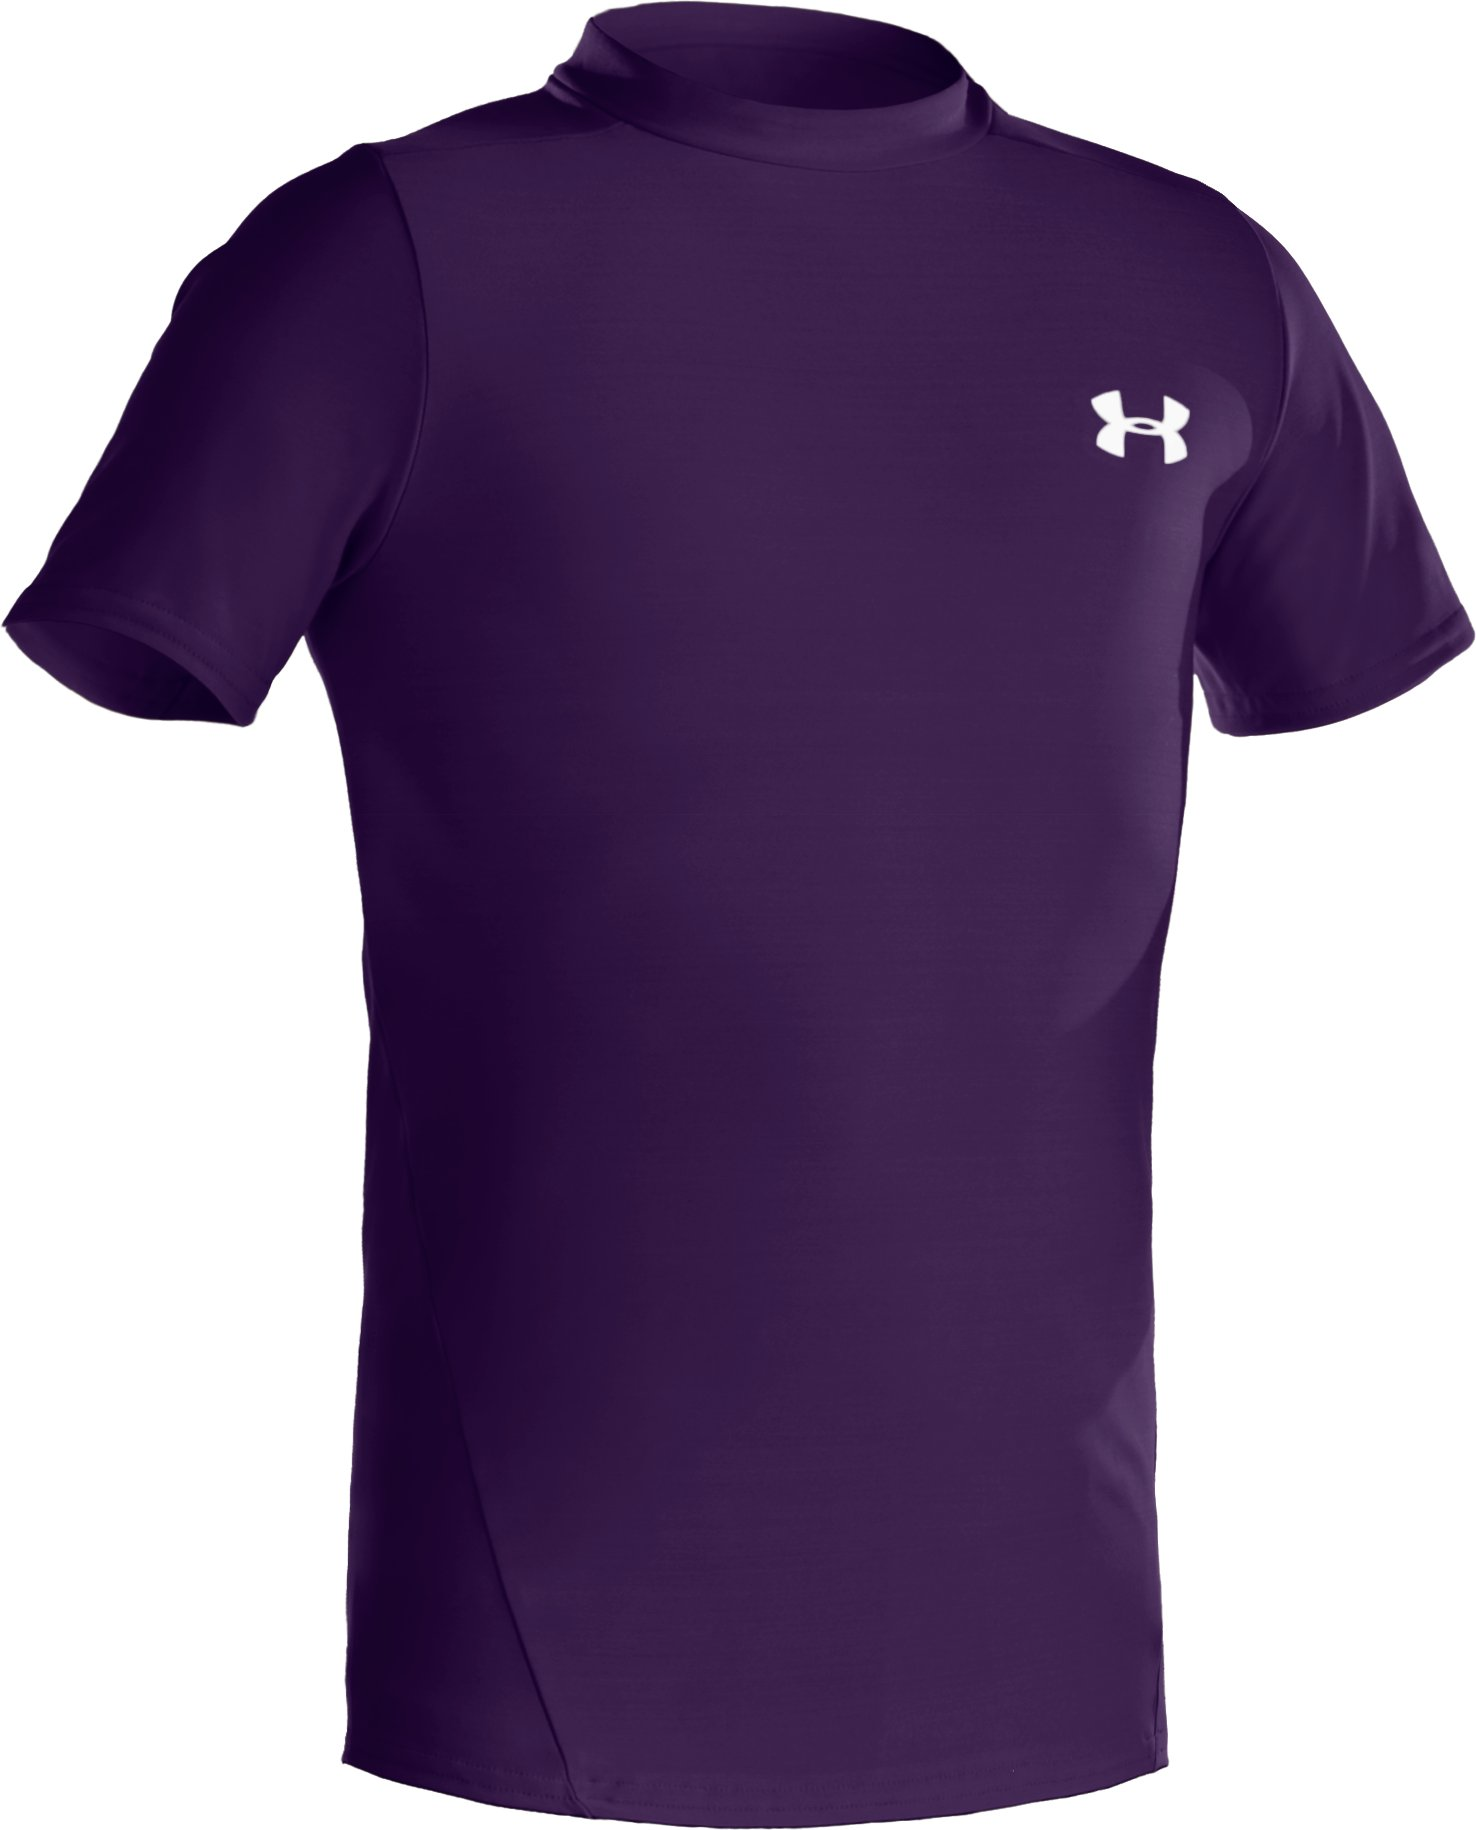 Boys' Short Sleeve HeatGear® T-Shirt II, Purple